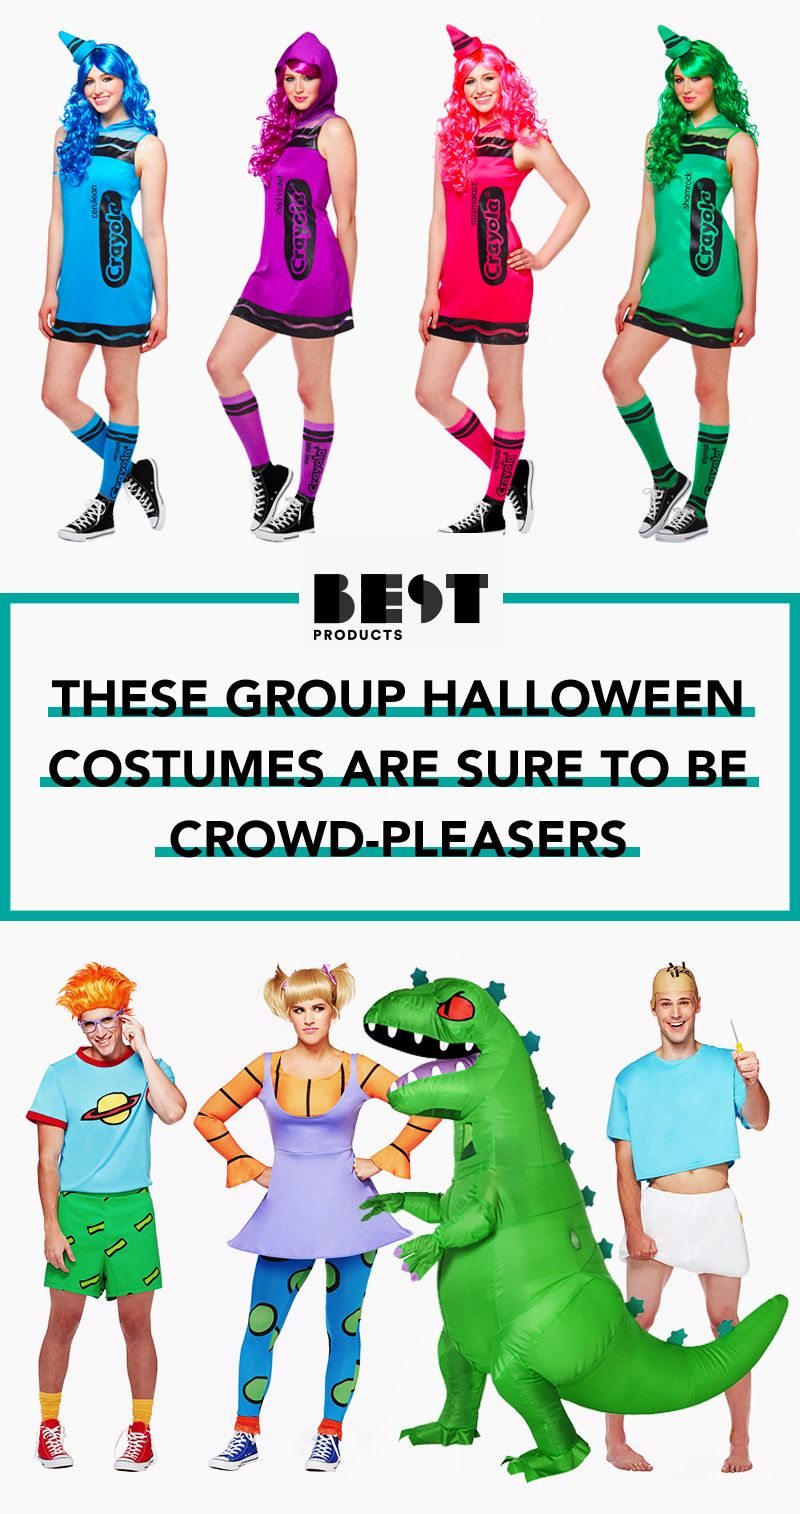 121c4ef8 32 Best Group Halloween Costumes for 2018 - Fun Group Costume Ideas for  Friends